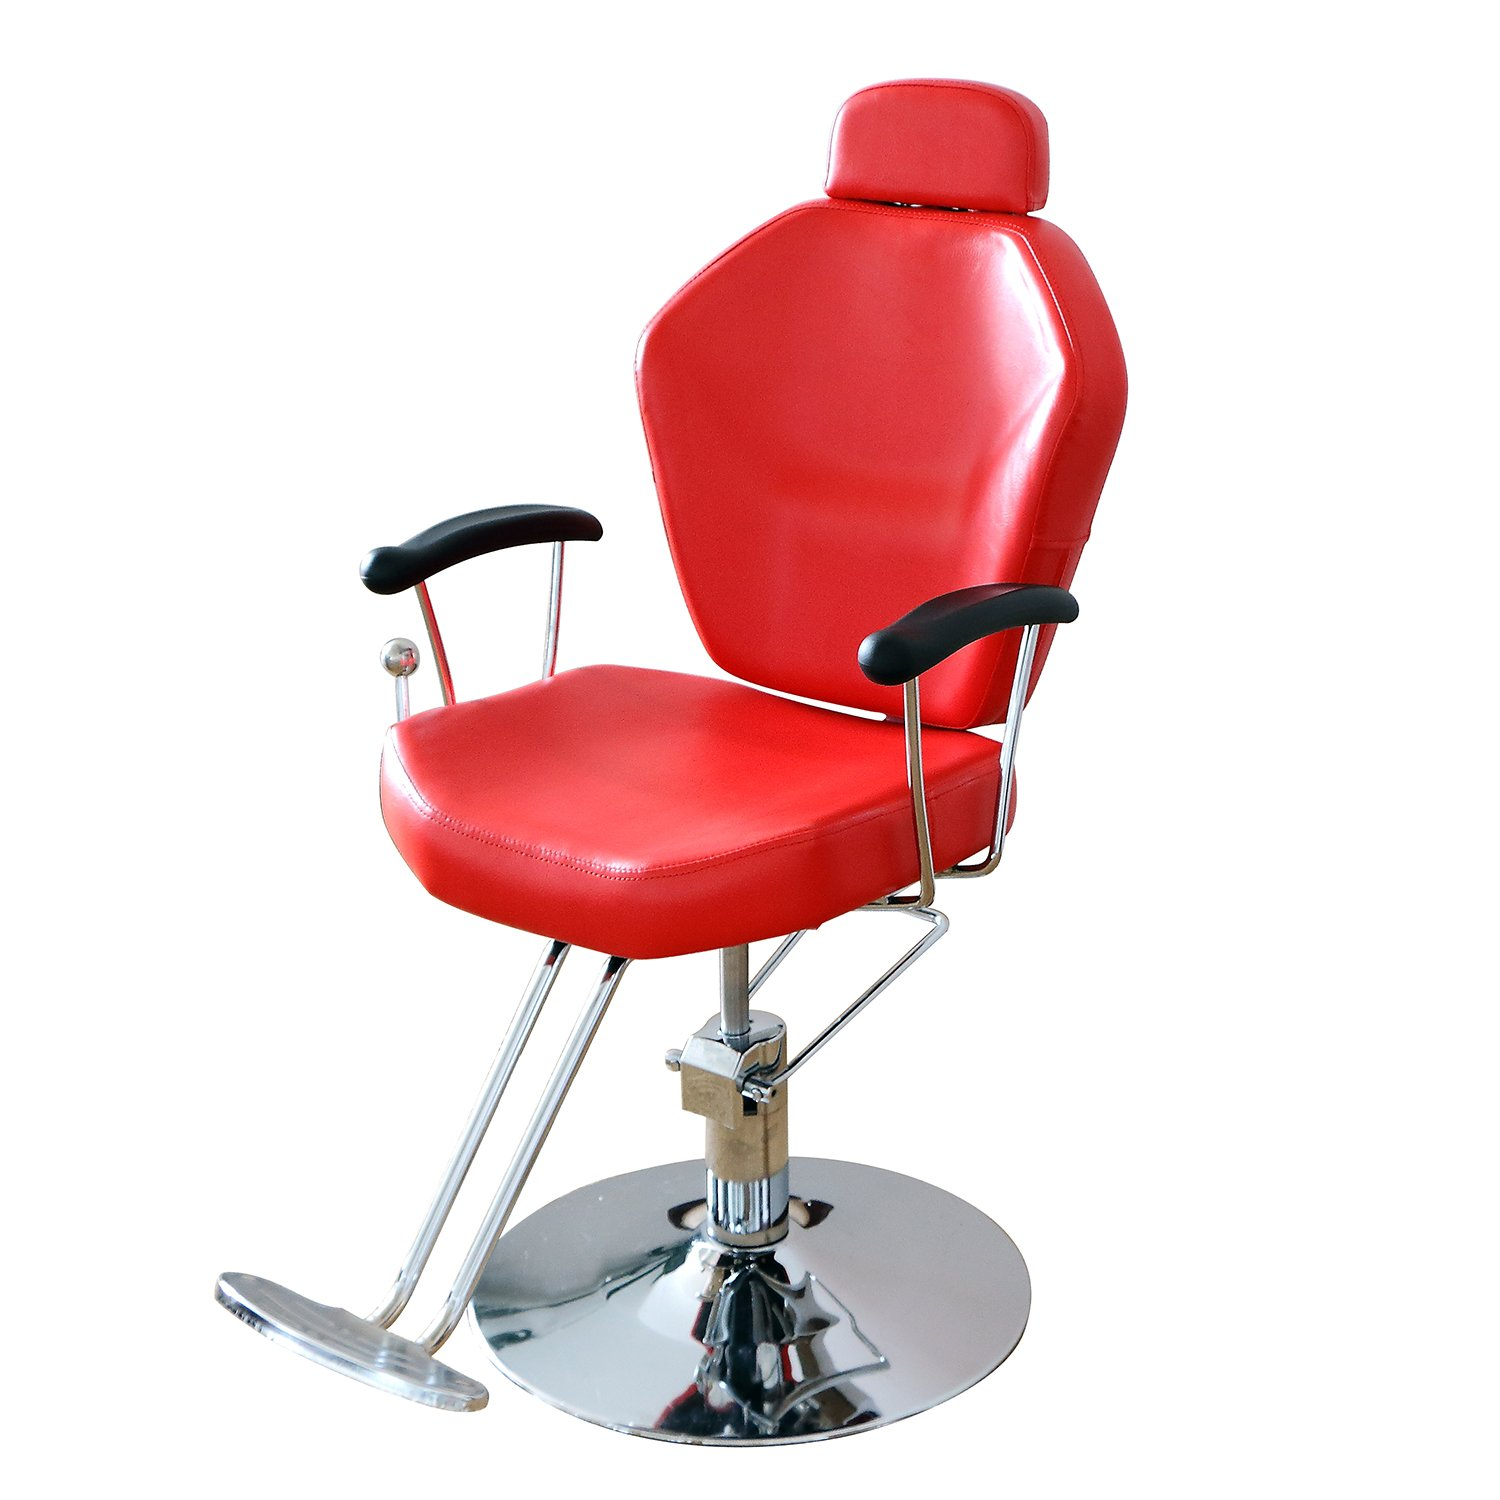 Walcut New Red Hydraulic Barber Chair Styling Salon Beauty Equipment Spa Funiture With Adjustable Headrest & Backrest